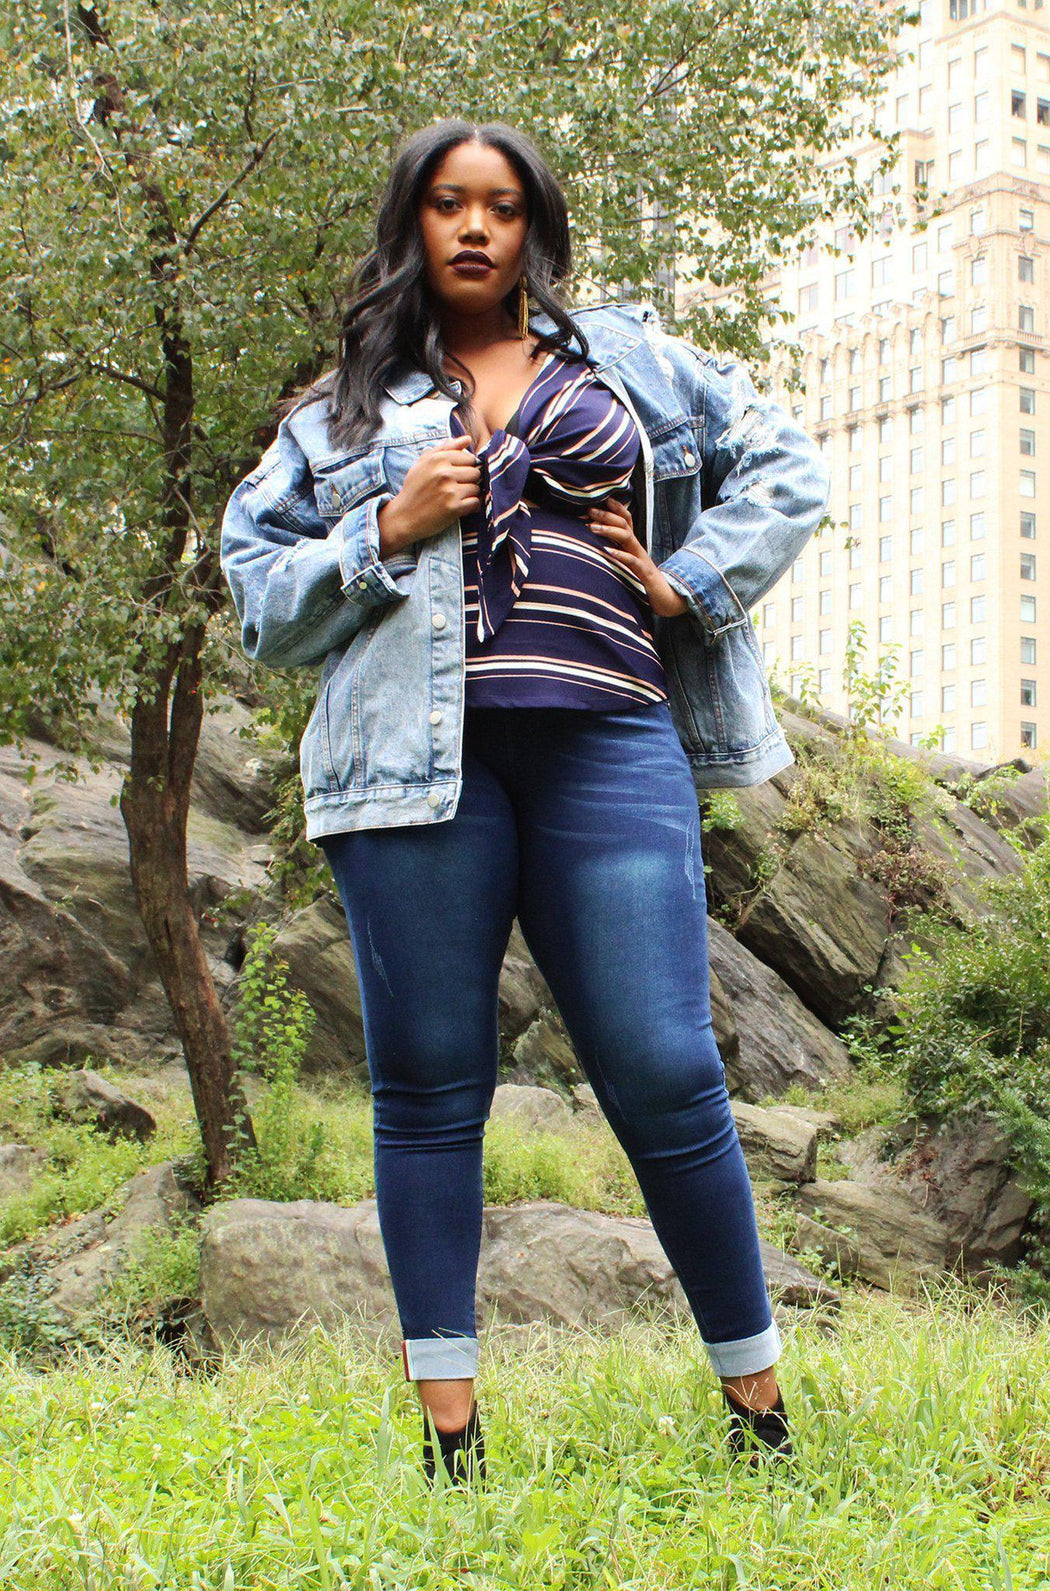 Jesse distressed denim jacket with mallorca top and stella jeans on model